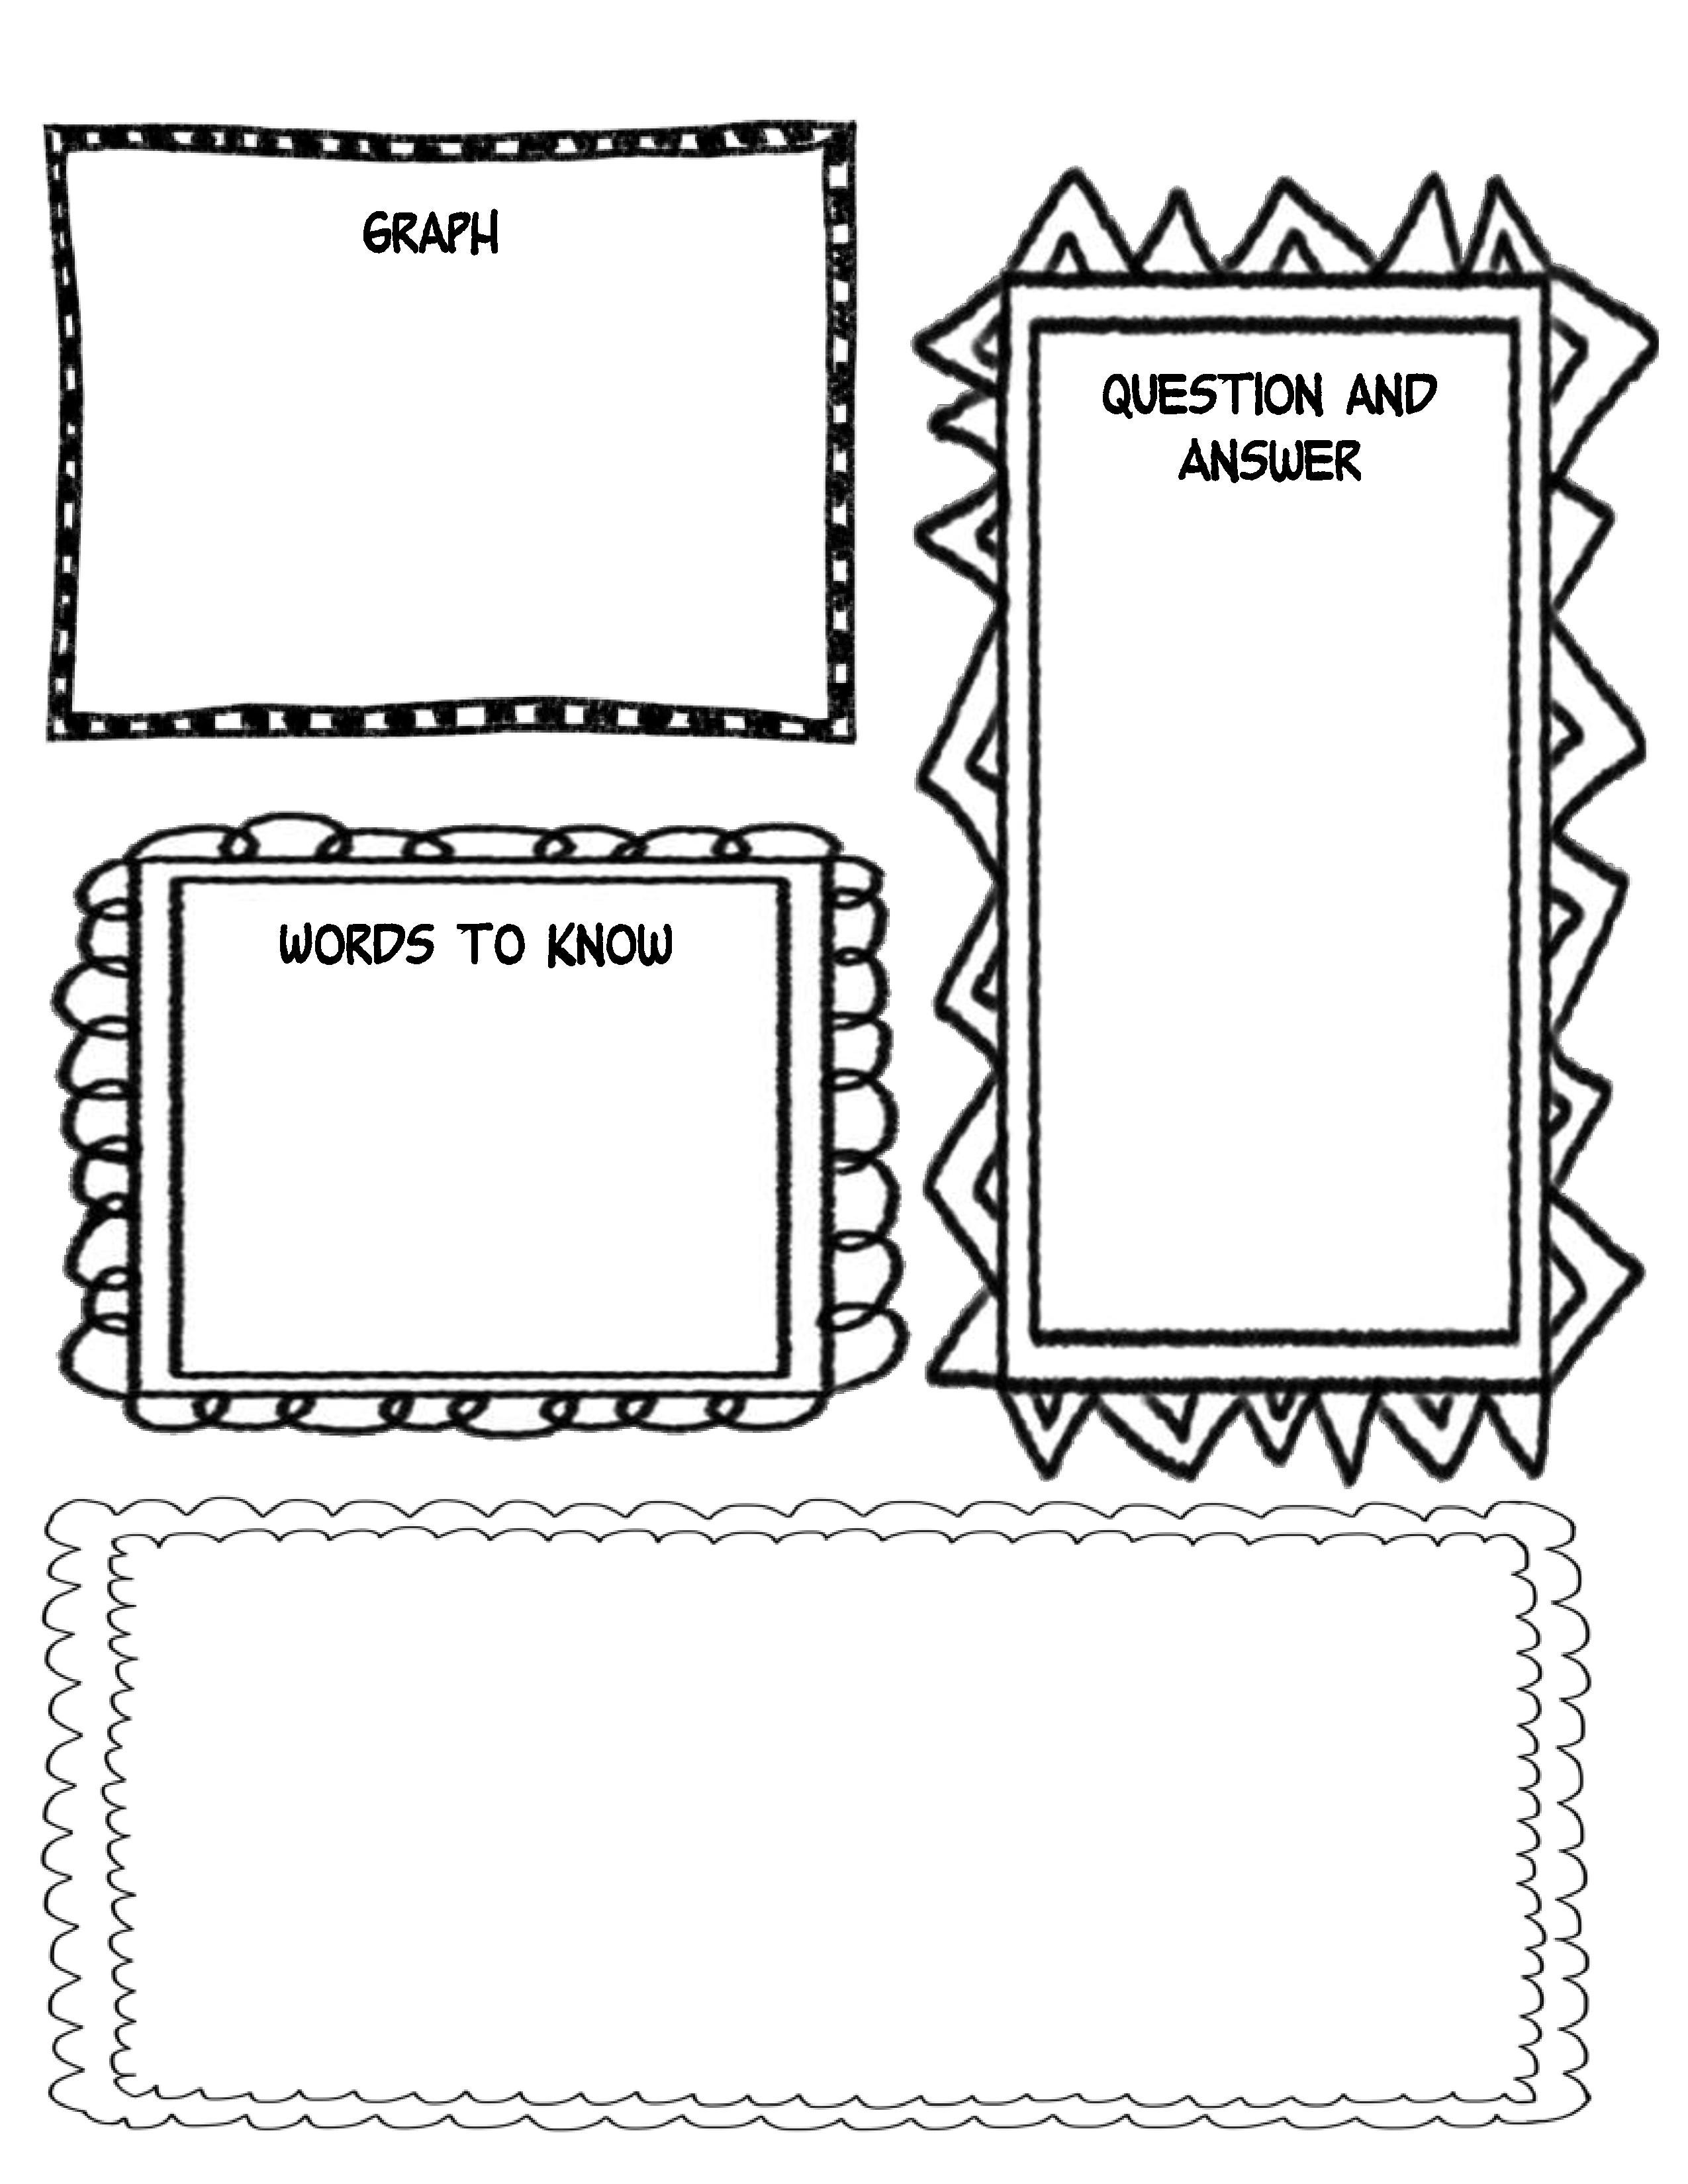 Navigating Nonfiction Text In The Common Core Classroom Part 1